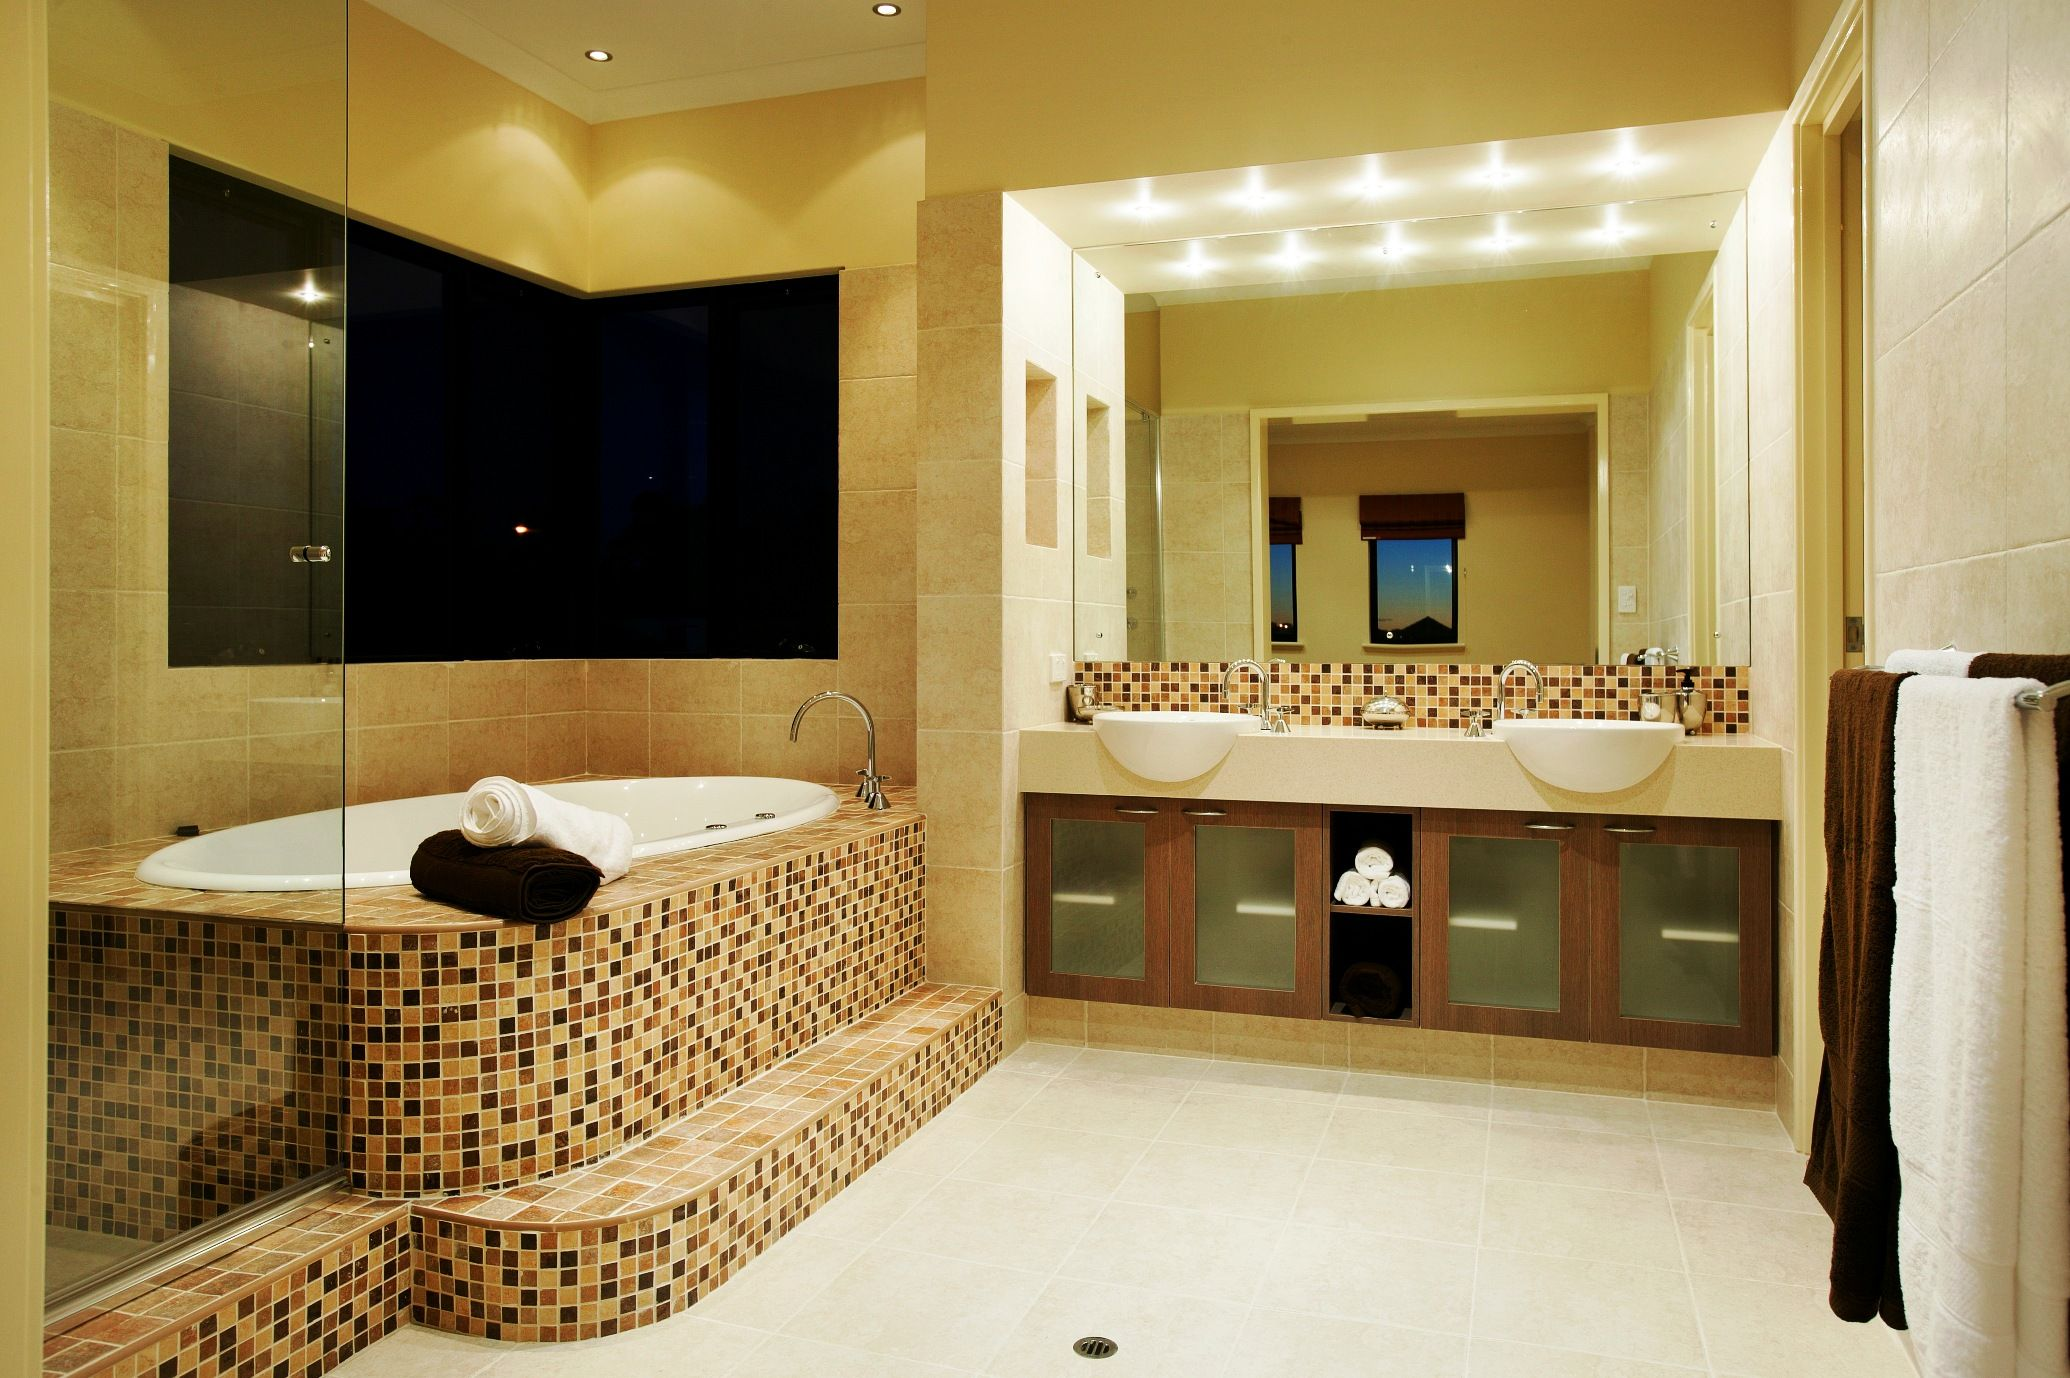 yellow marble bathroom with a white marble floor, a mirror and a spa with mosiac tiling